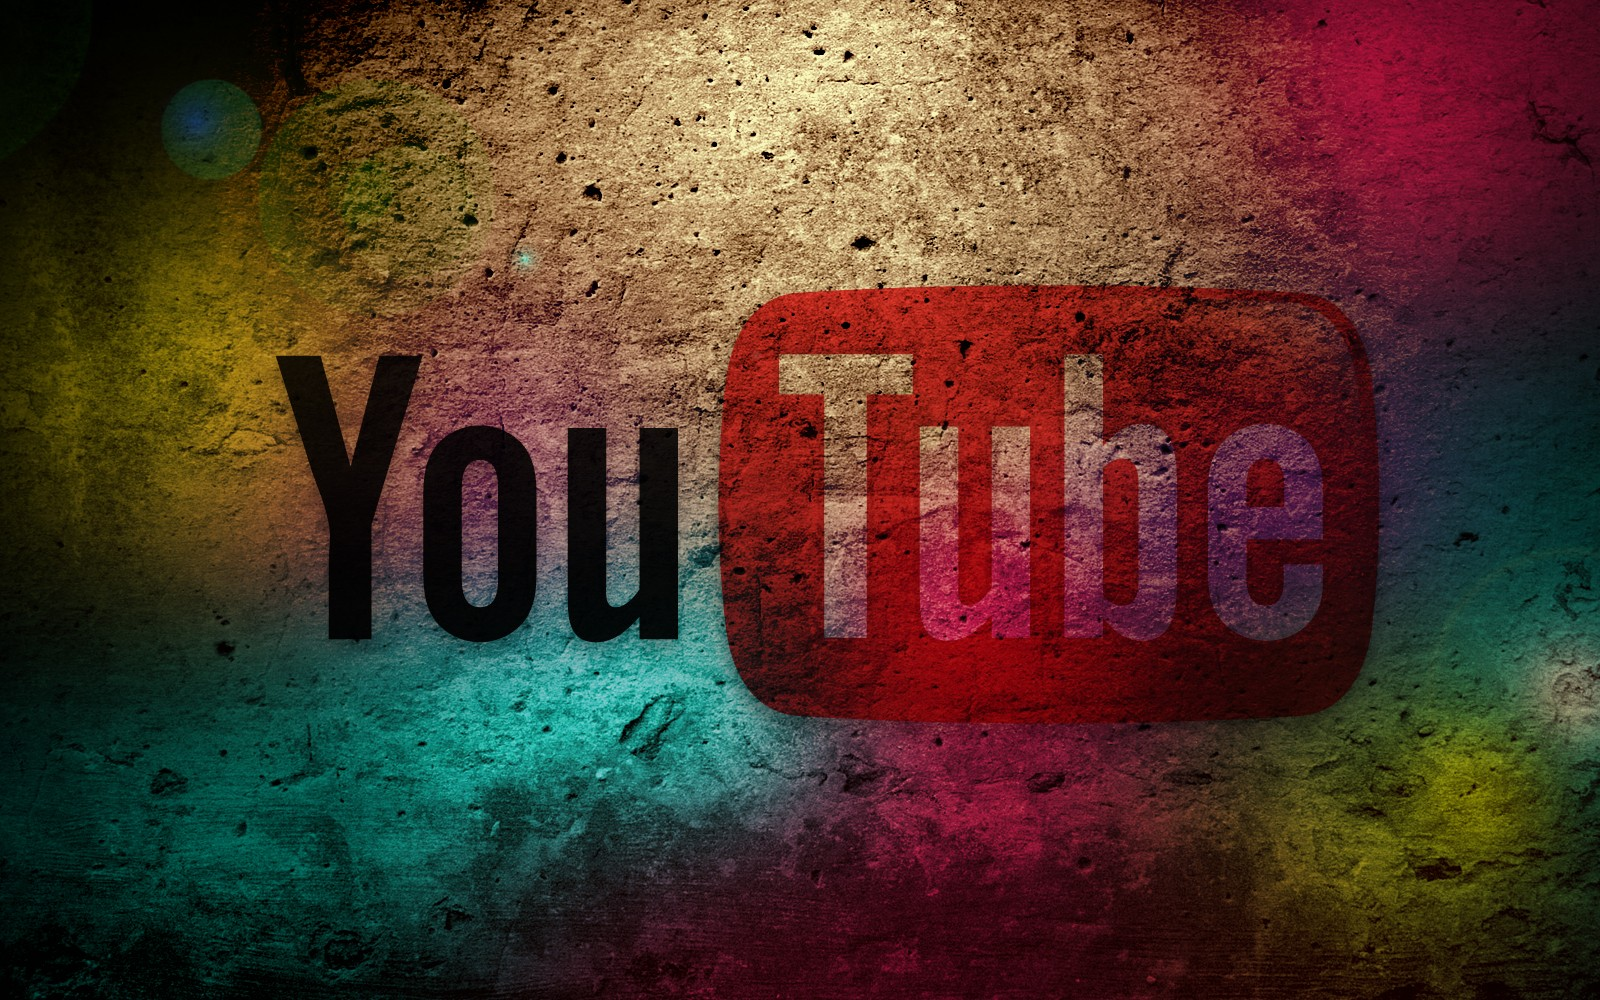 Central Wallpaper: Youtube HD Logo & Wallpapers